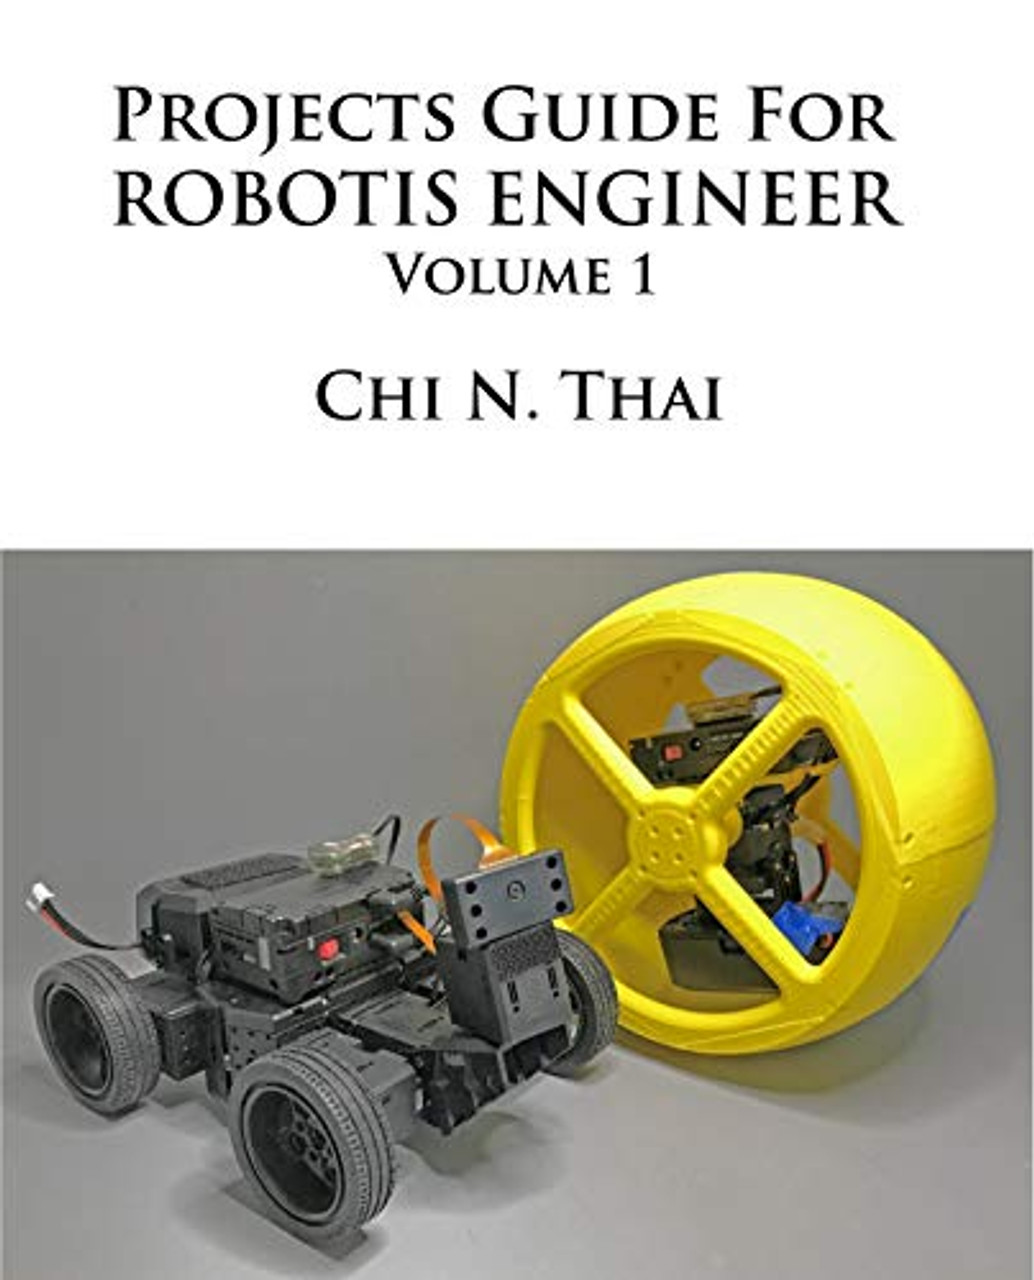 Projects Guide for ROBOTIS Engineer: Volume 1